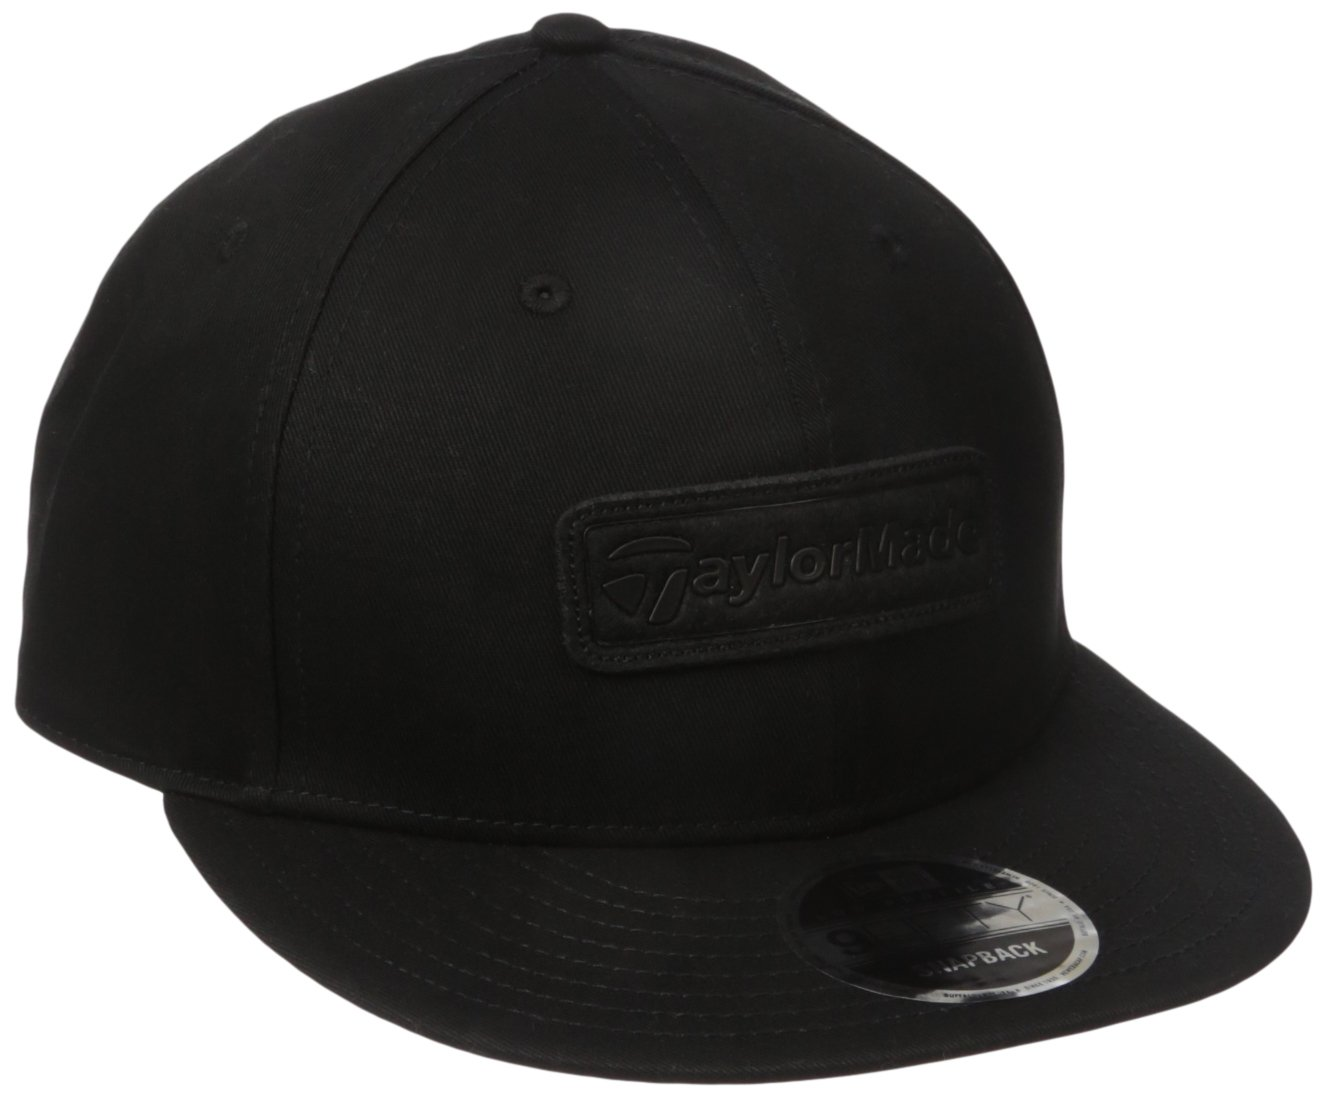 Buy TaylorMade Lifestyle New Era 9fifty Hat in Cheap Price on m.alibaba.com aae4ef6a640